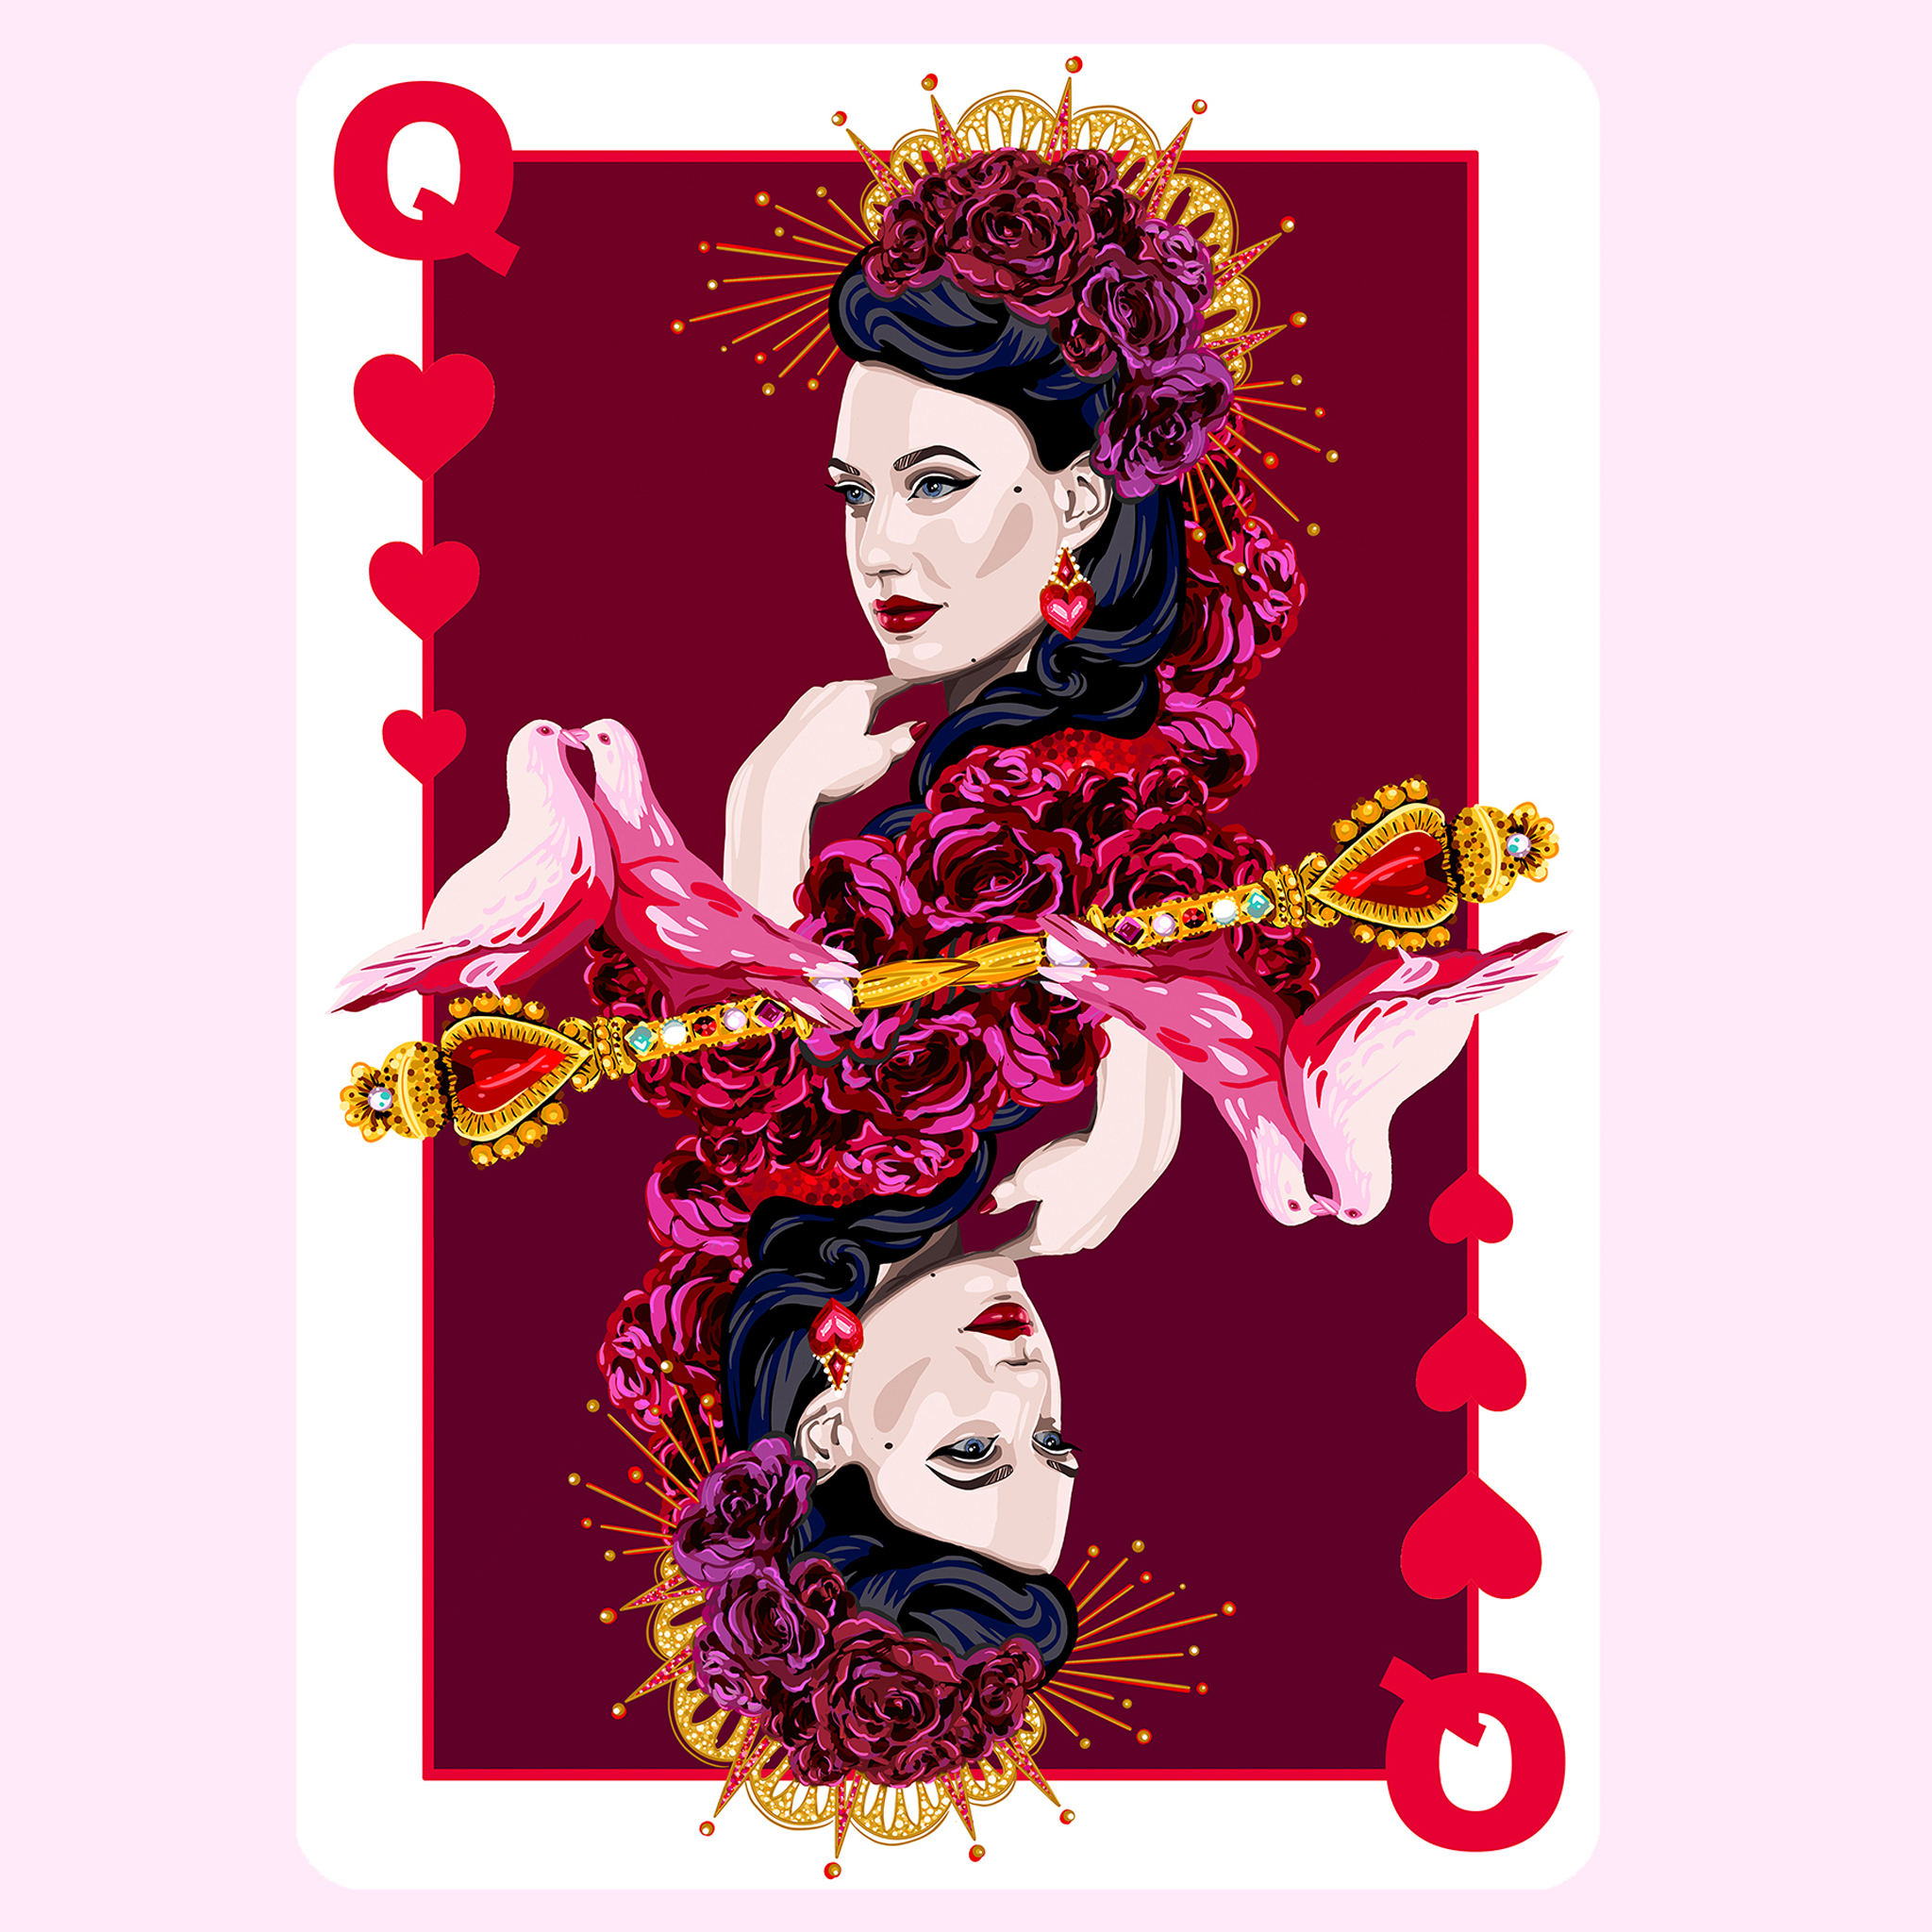 queen of hearts burlesque illustrated playing cards aase hopstock